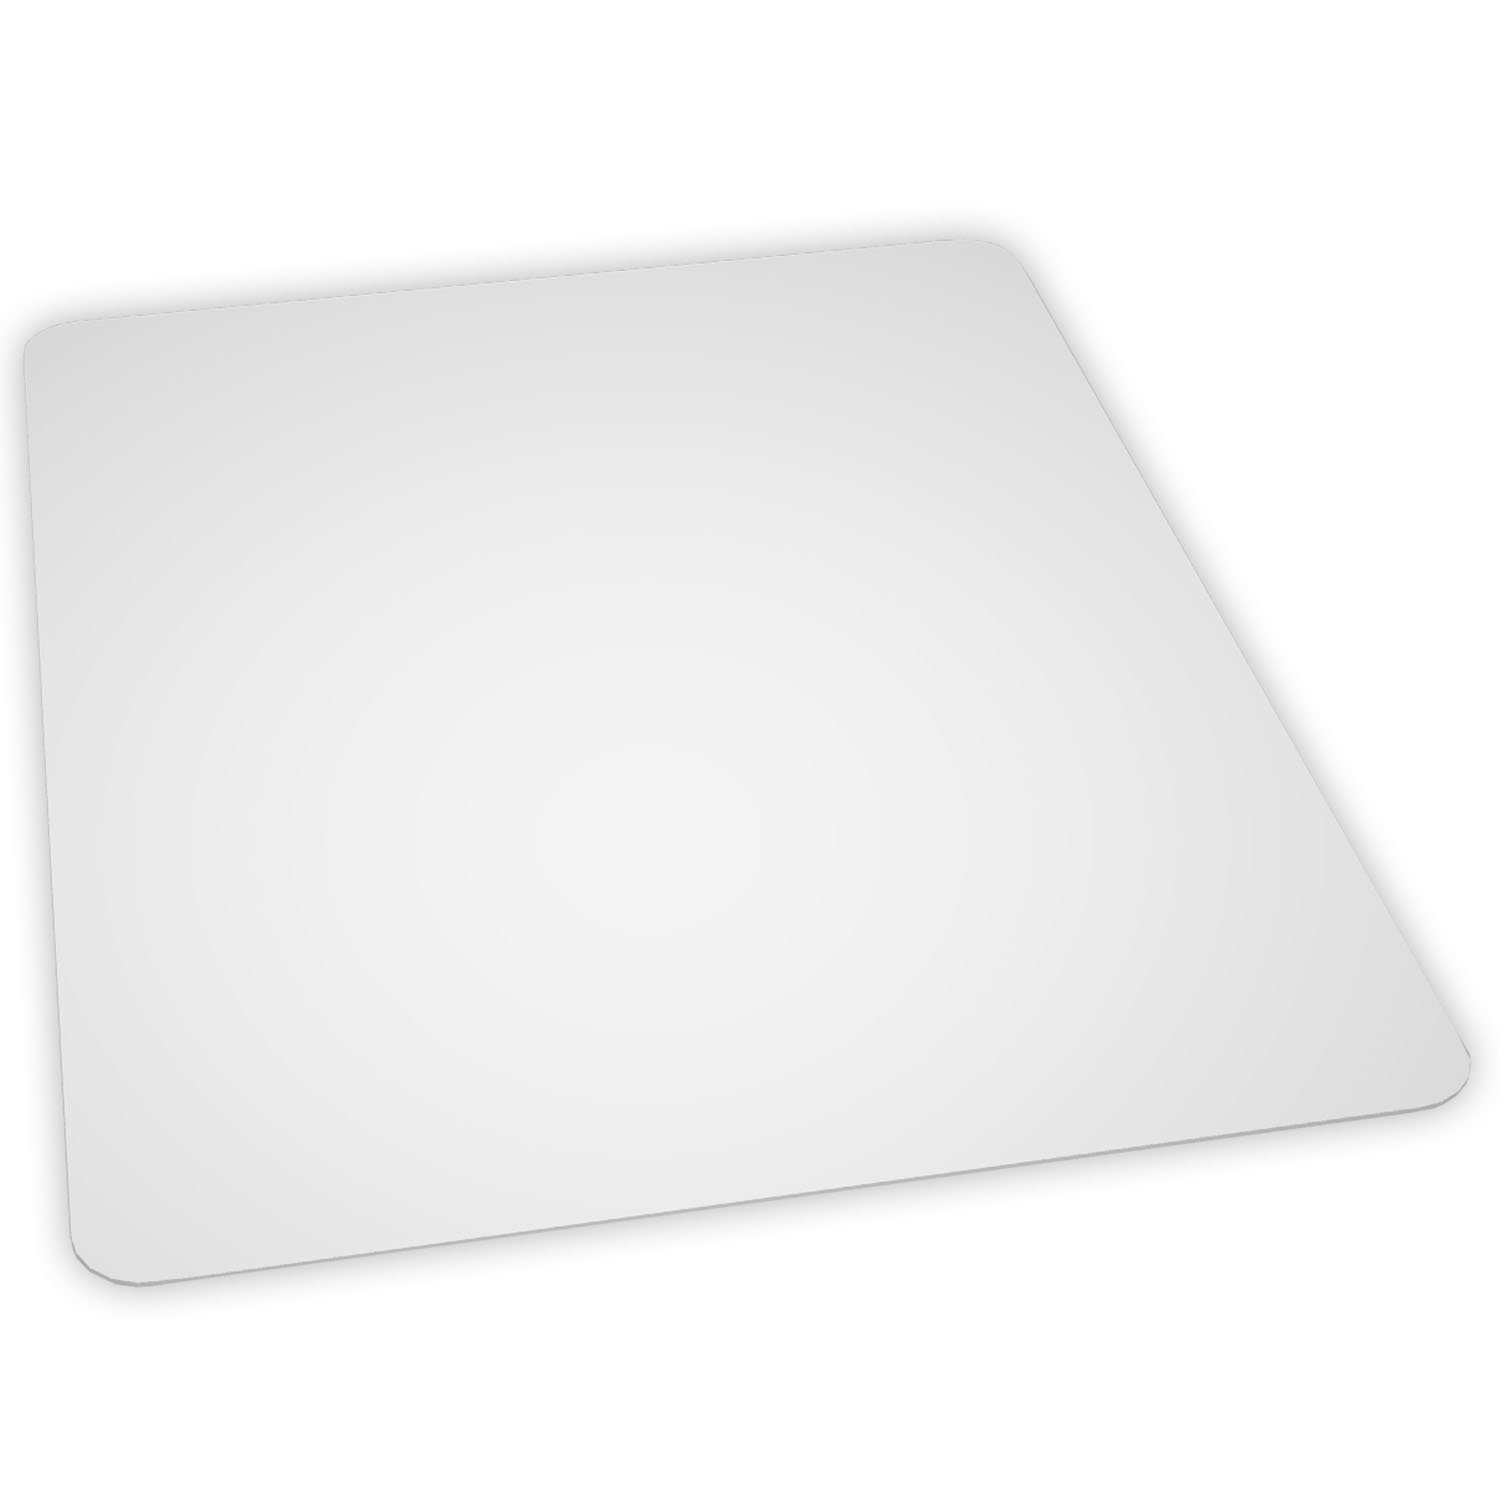 ES Robbins EverLife Hard Floor Rectangle Vinyl Chair Mat, 45 by 53-Inch, Clear 132121